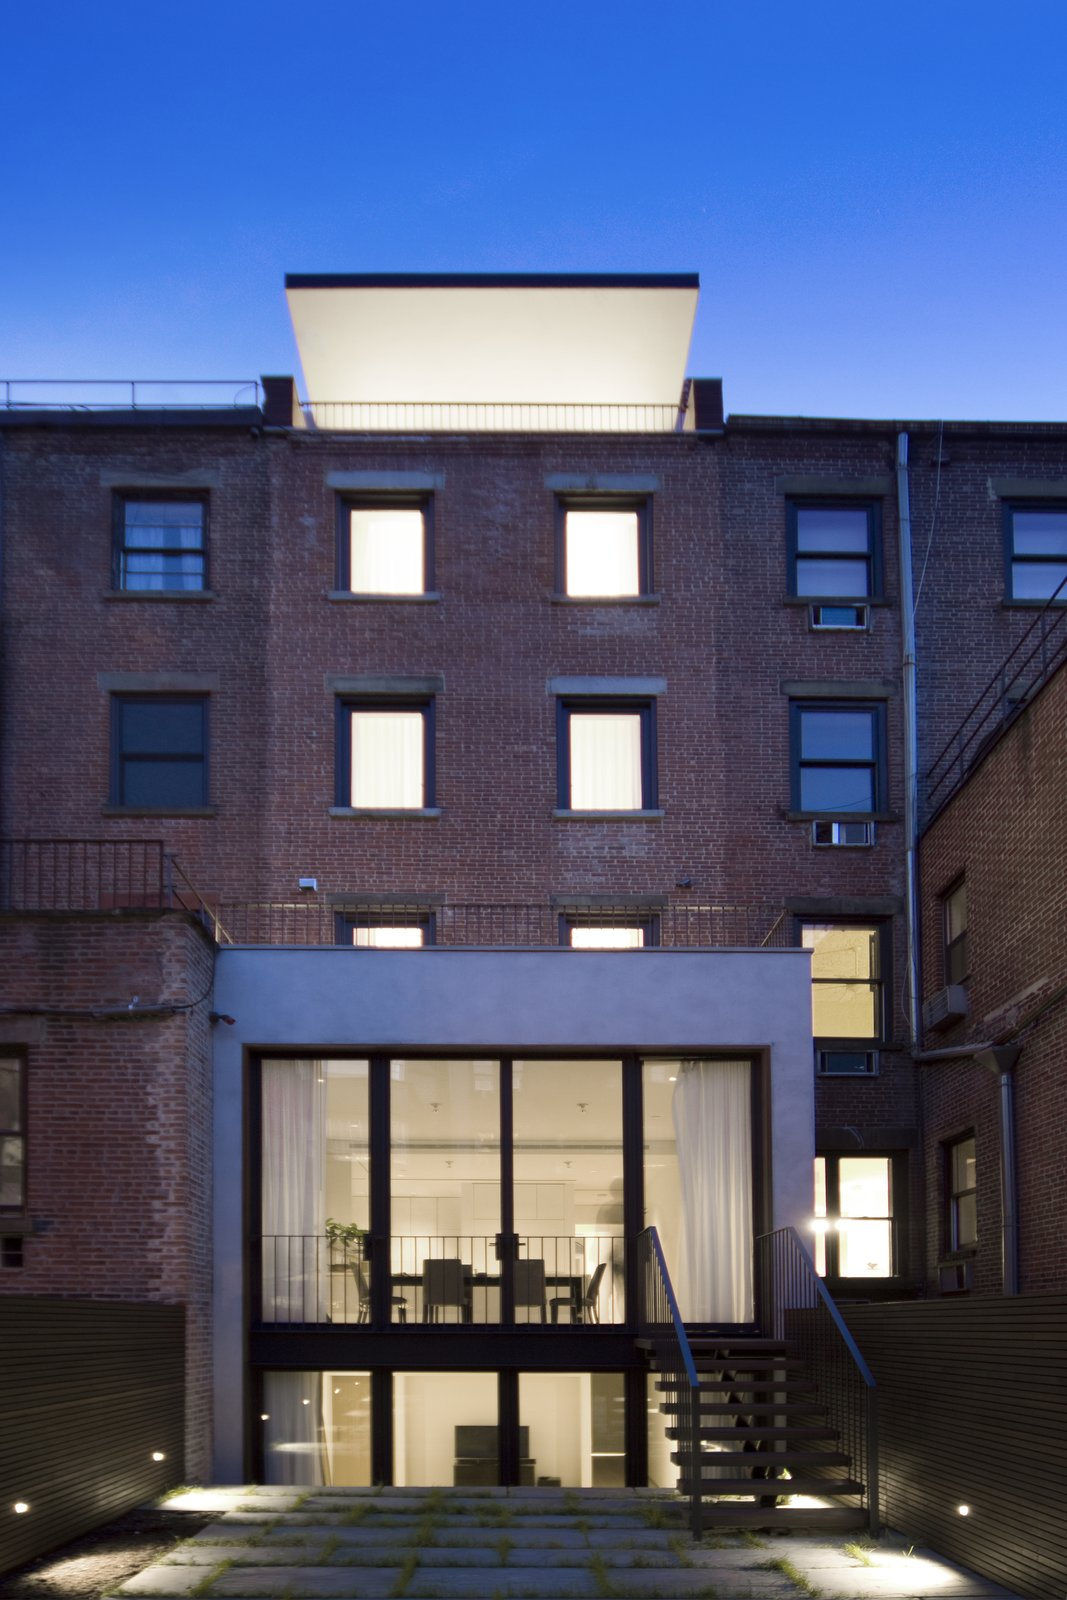 The restored brick rear facade contrasts with the extended footprint of the first two floors and a dramatic cantilevered penthouse roof. Blue stone pavers, infilled with grass, finish the patio while a black steel stair leads to the kitchen.